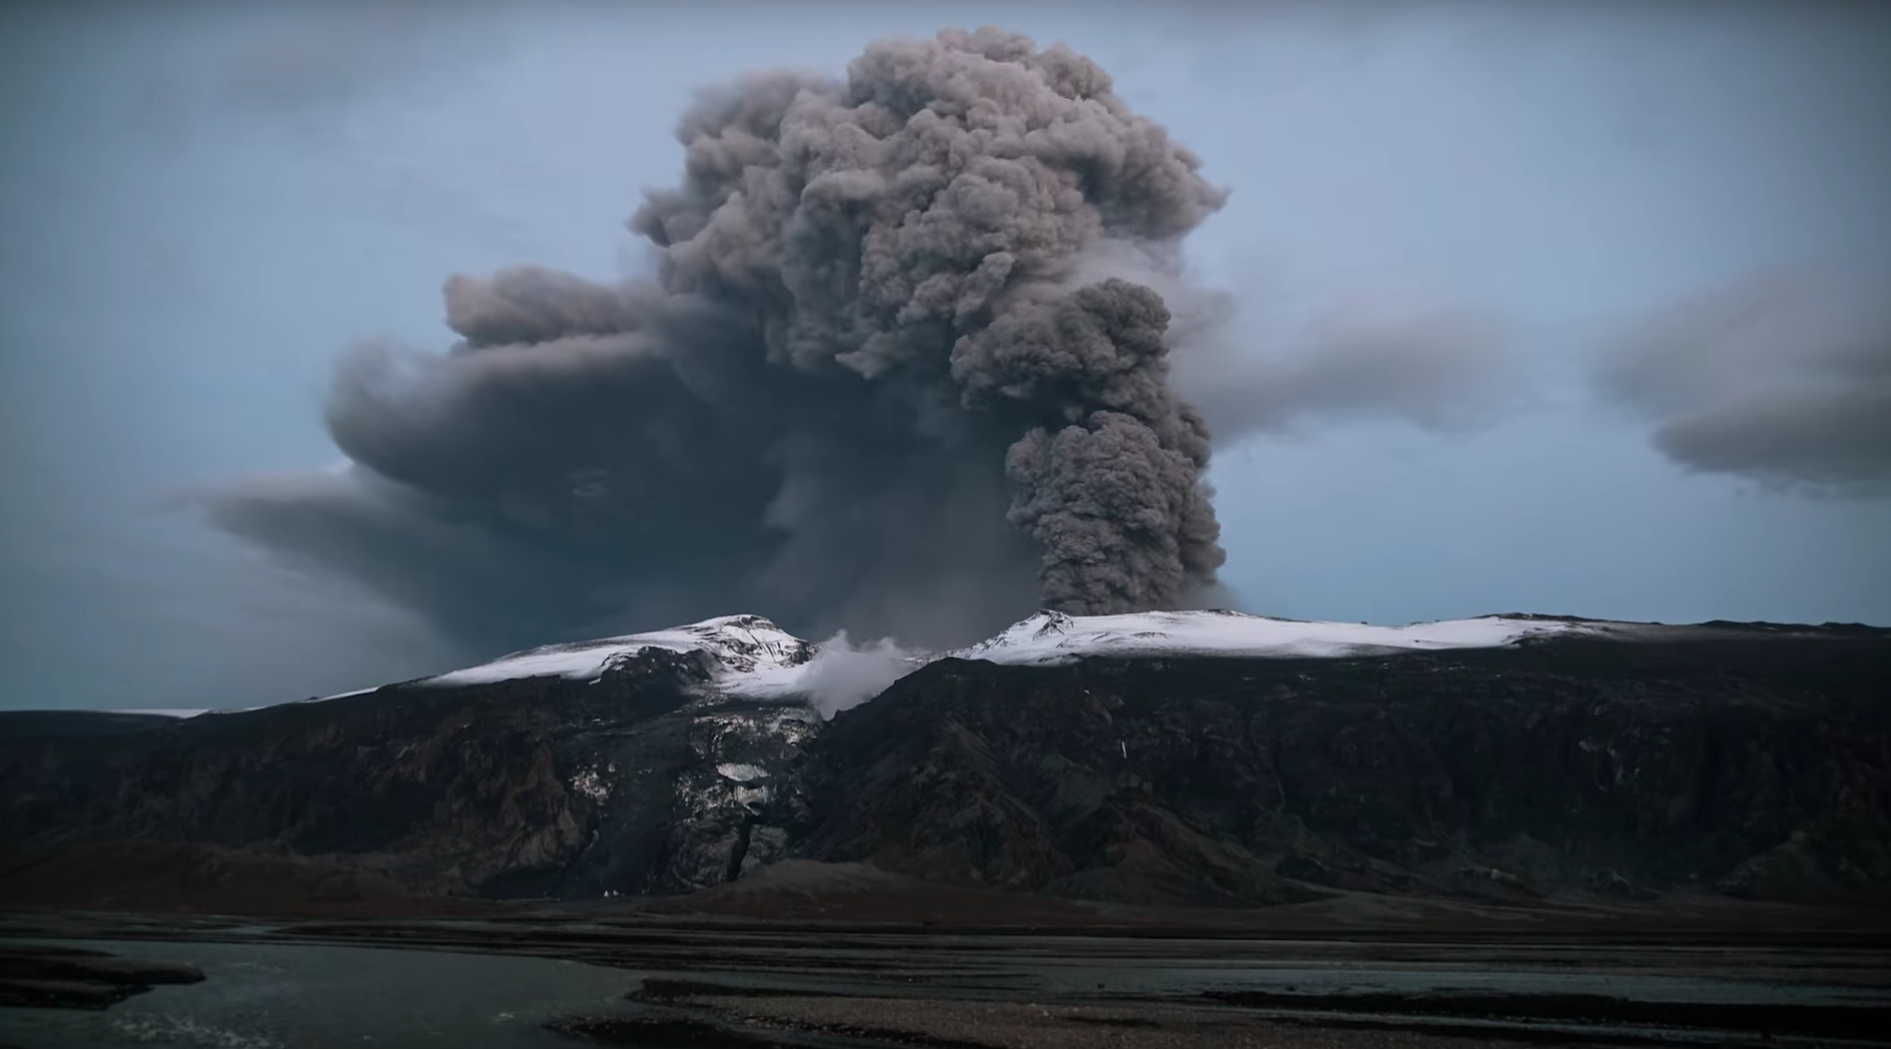 A photo of the 2010 Eyjafjallajökull eruption producing a plume of volcanic ash.